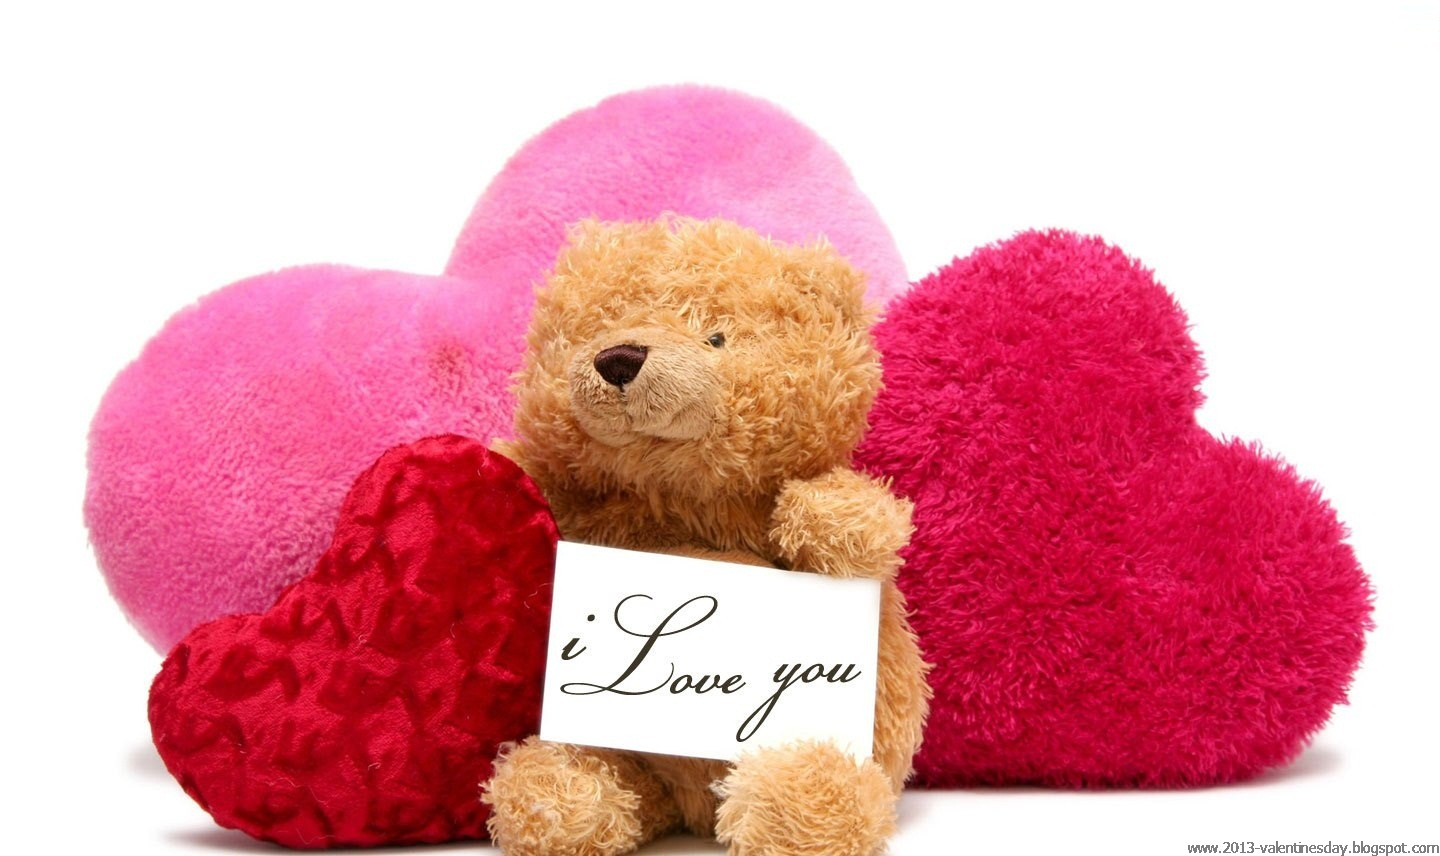 Teddy bear with love images - photo#12